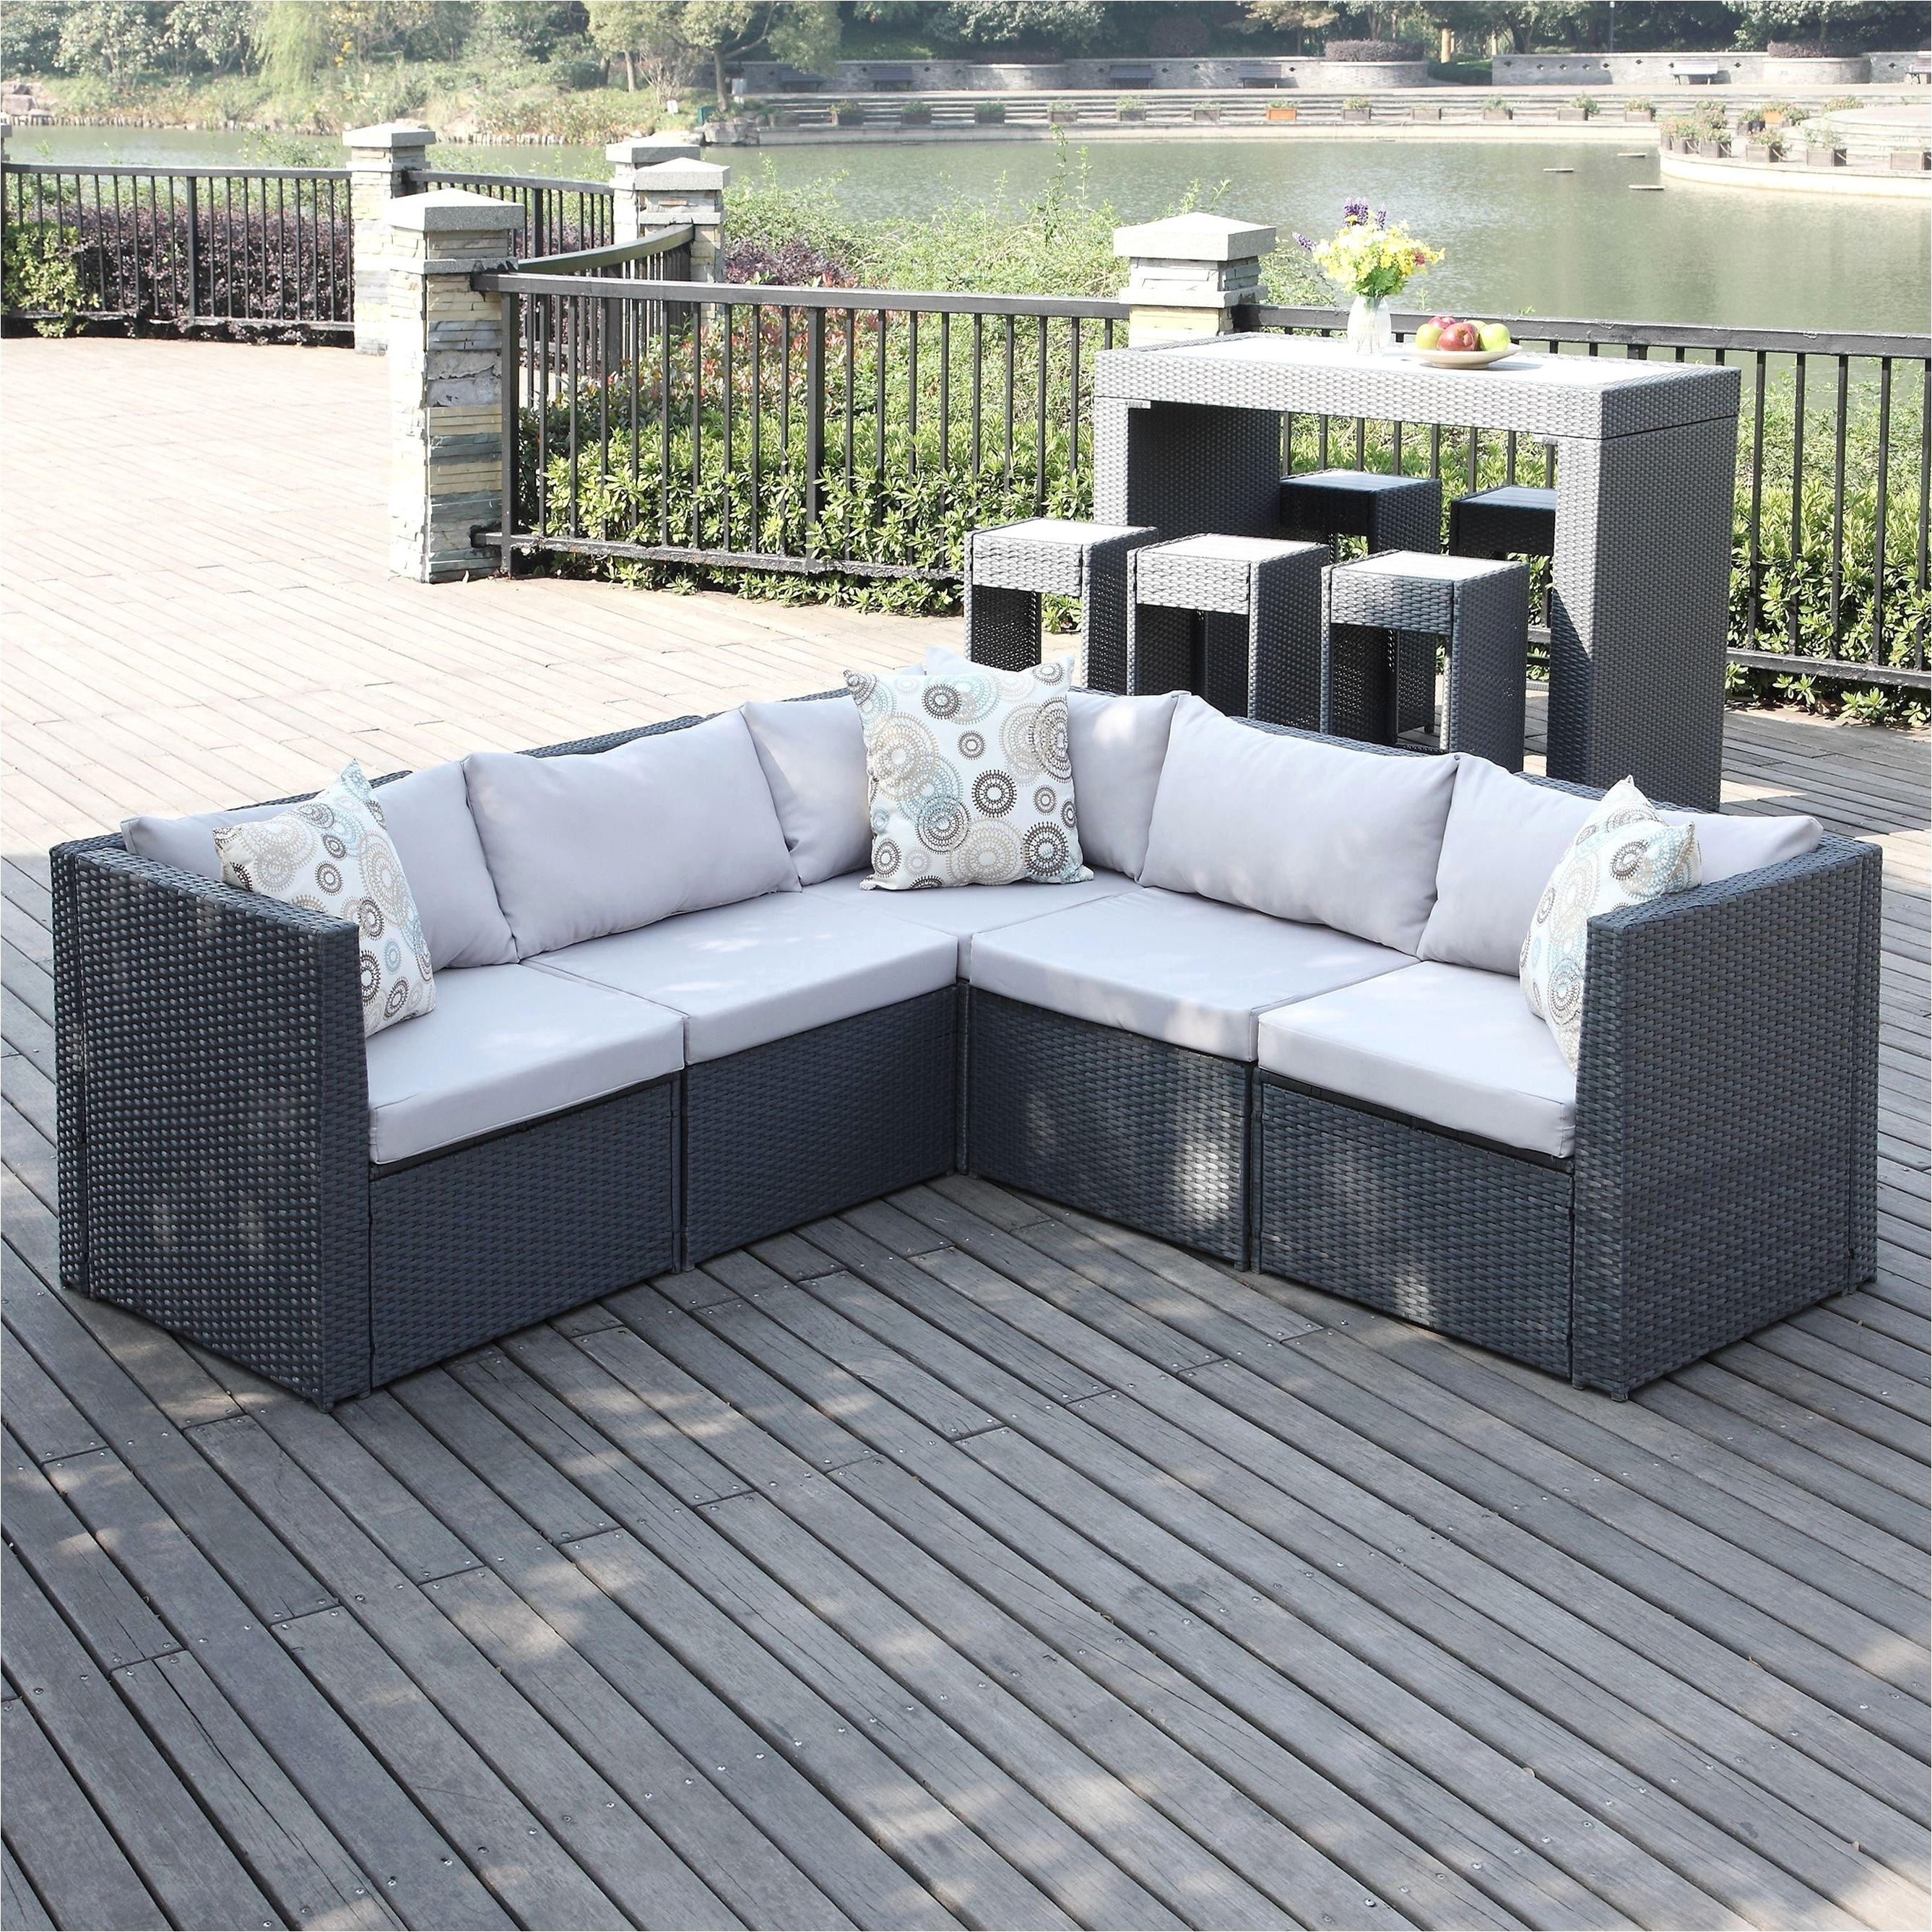 32 New Modern Patio Furniture Amazon Scheme Of Metal Patio Regarding Most Recent Amazon Patio Furniture Conversation Sets (View 2 of 20)